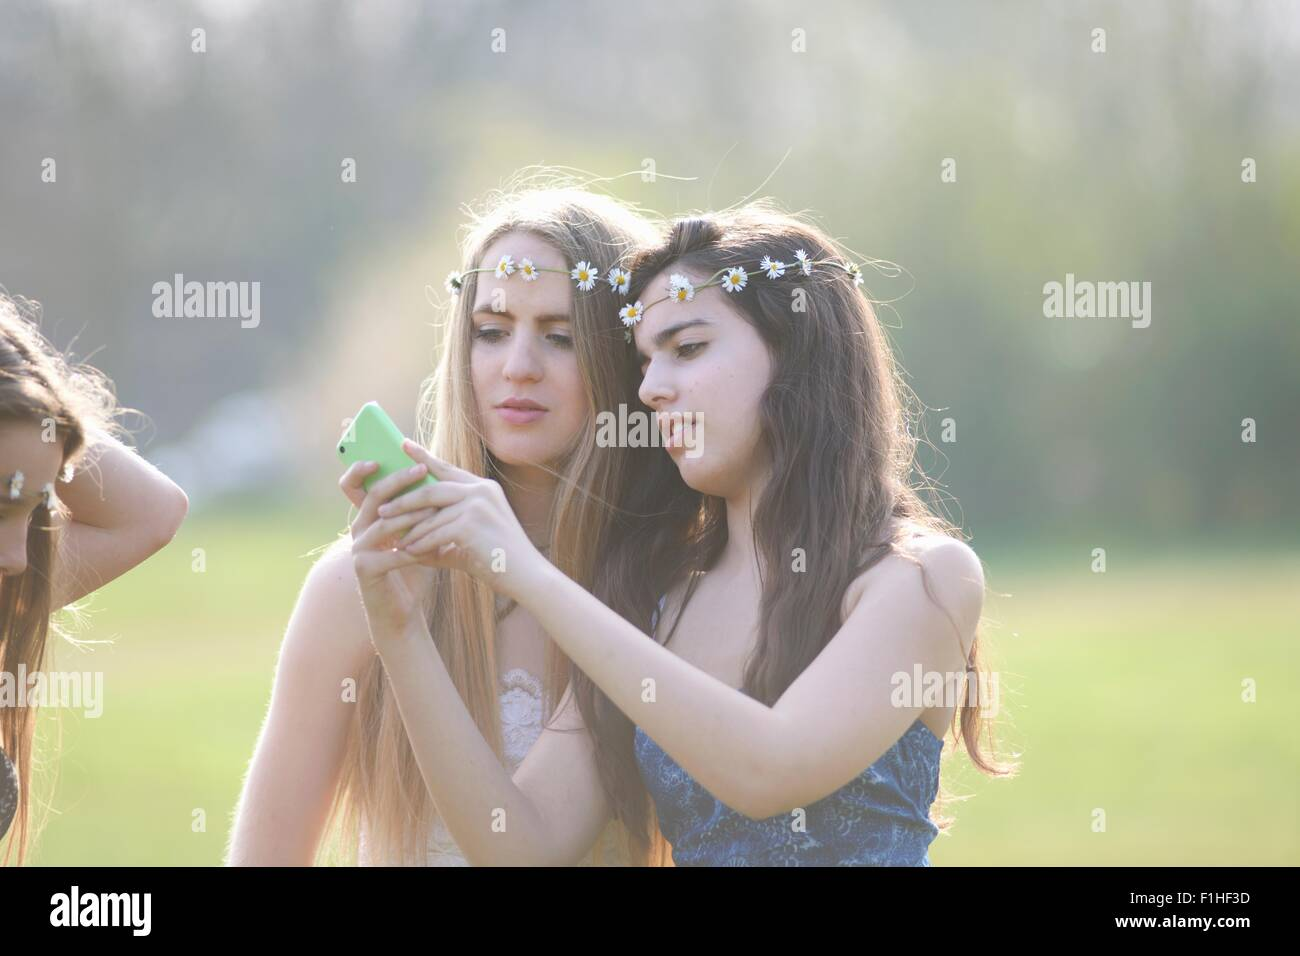 Two teenage girls wearing daisy chain headdresses reading smartphone texts in park - Stock Image